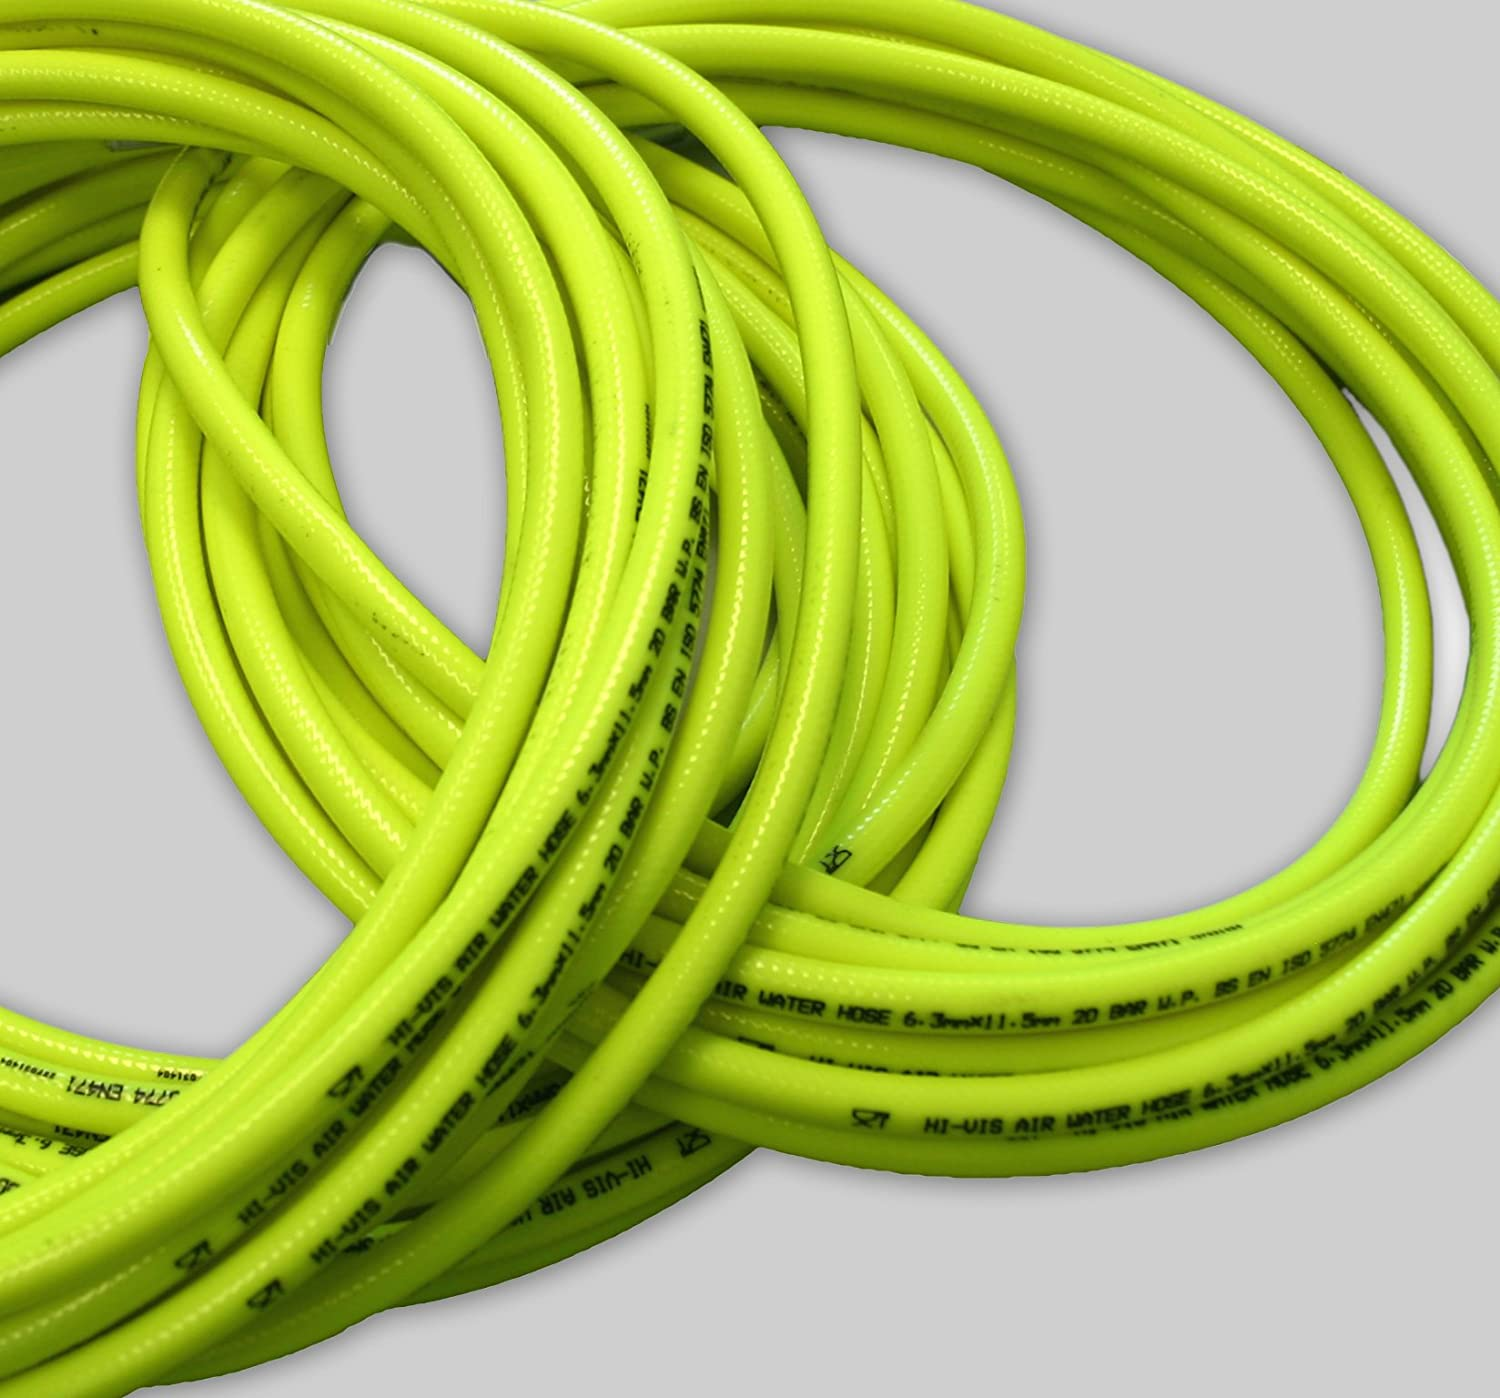 30m 1/2' (12.5mm) Hi-Vis industrial 20 Bar compressor air line/water hose - FDA approved, fluorescent braided PVC Camthorne